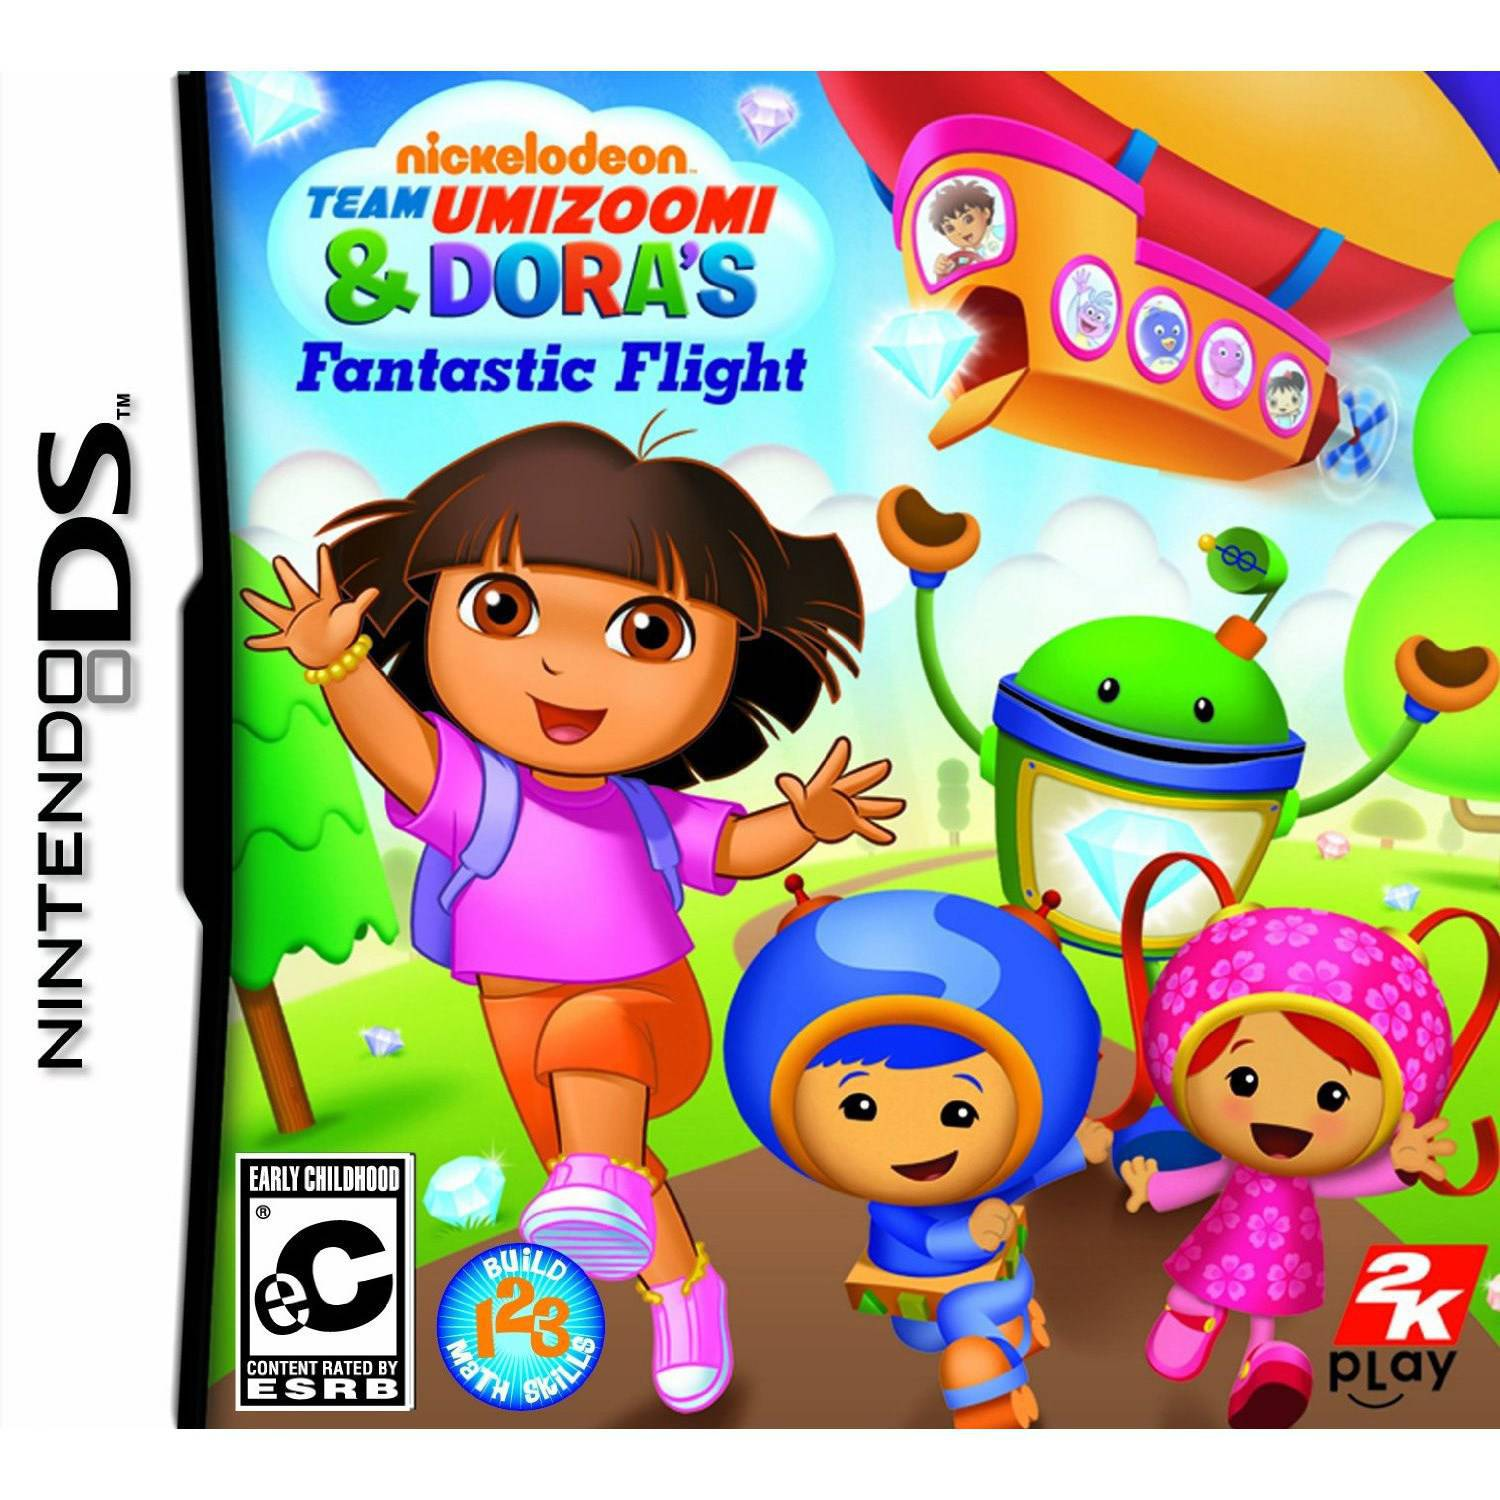 Dora the Explorer: Nickelodeon Dora & Team Umizoomi's Fantastic Flight (DS)